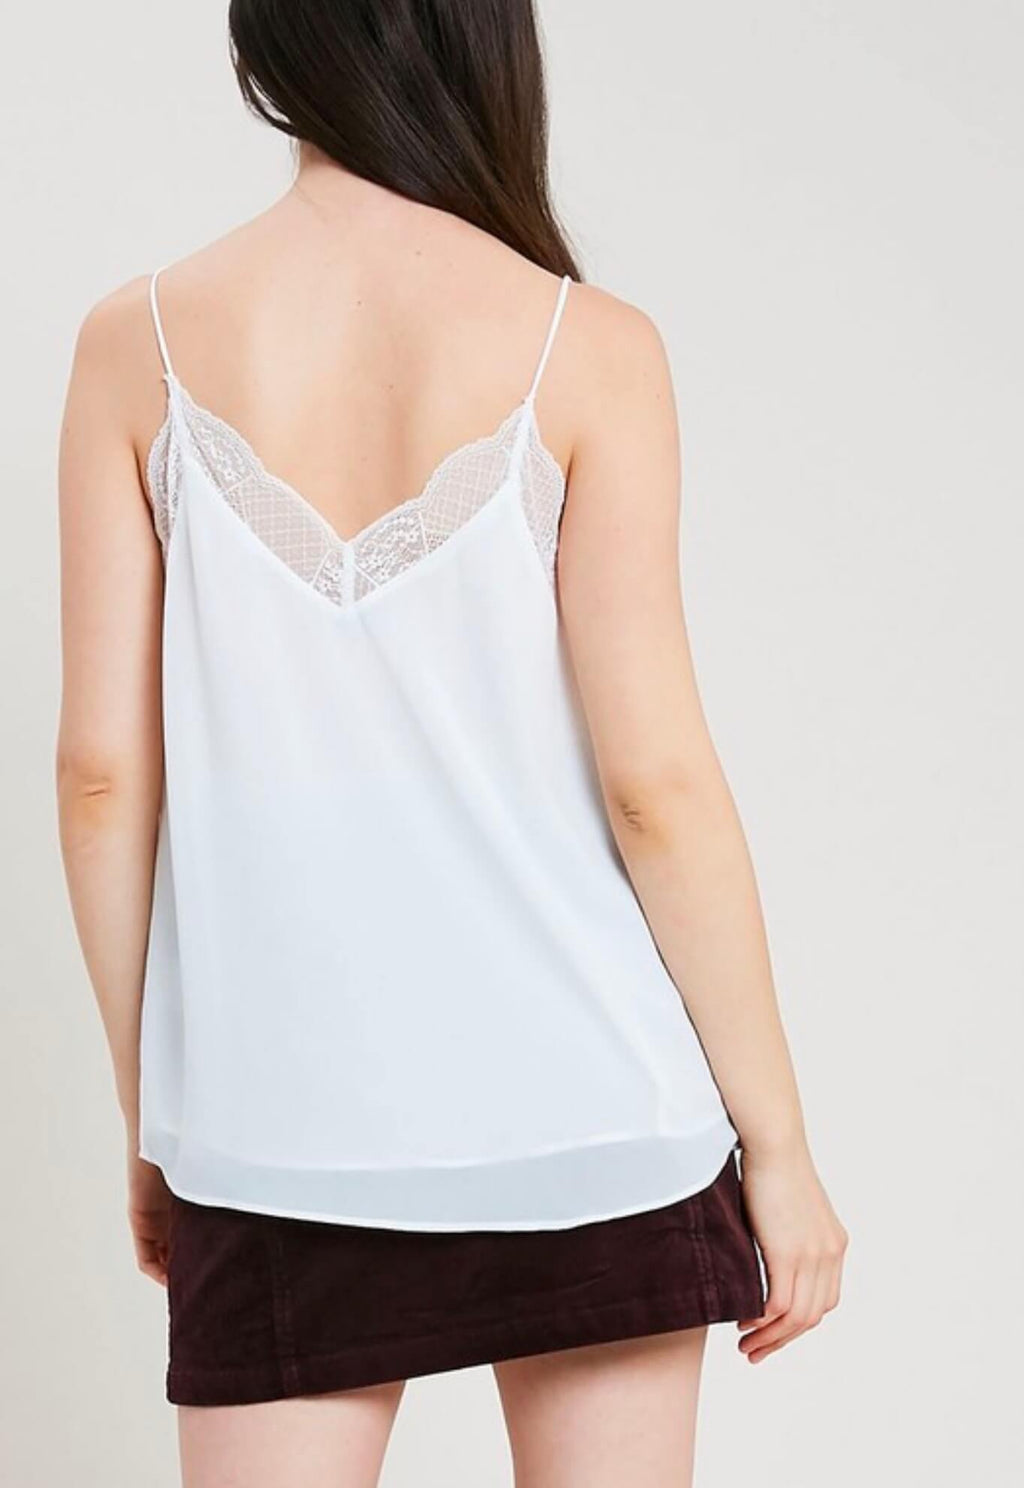 v-neck sleeveless lace trimmed camisole top - ivory